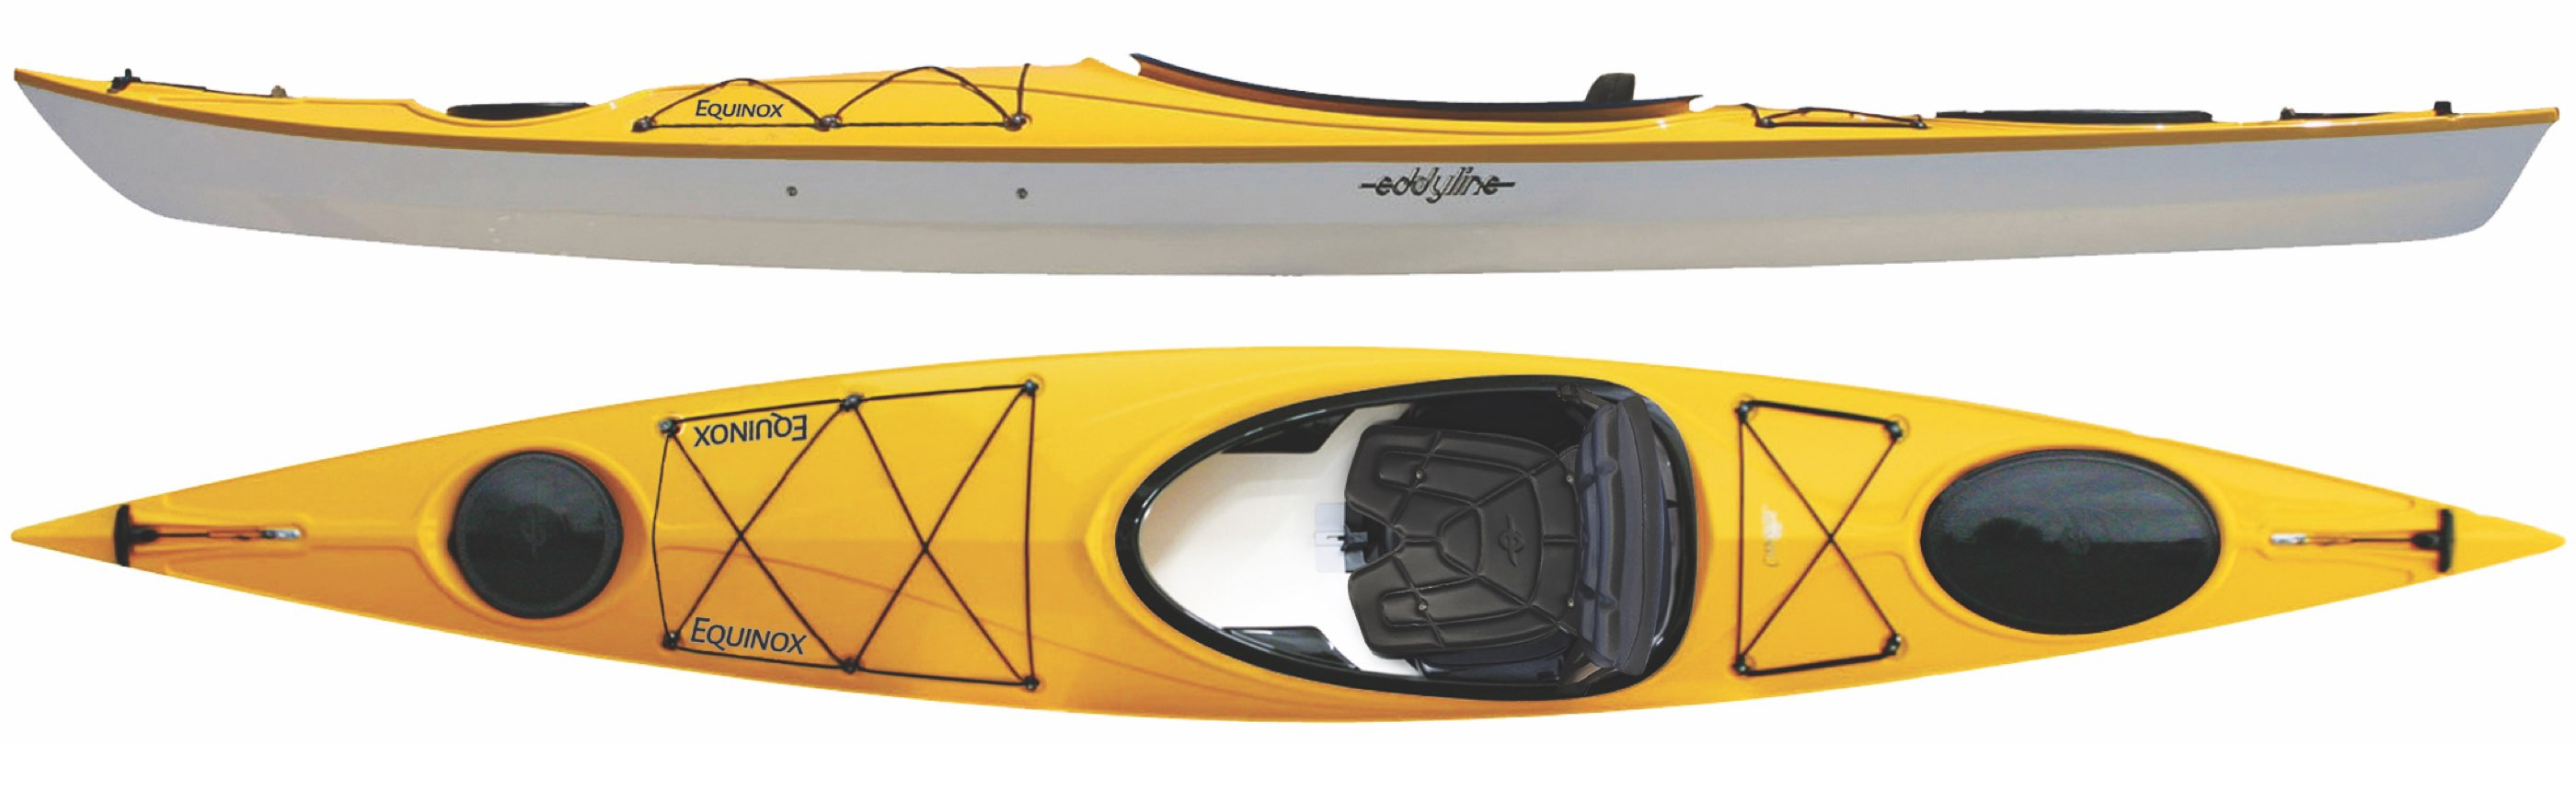 Kayaks: Equinox by Eddyline Kayaks - Image 3383